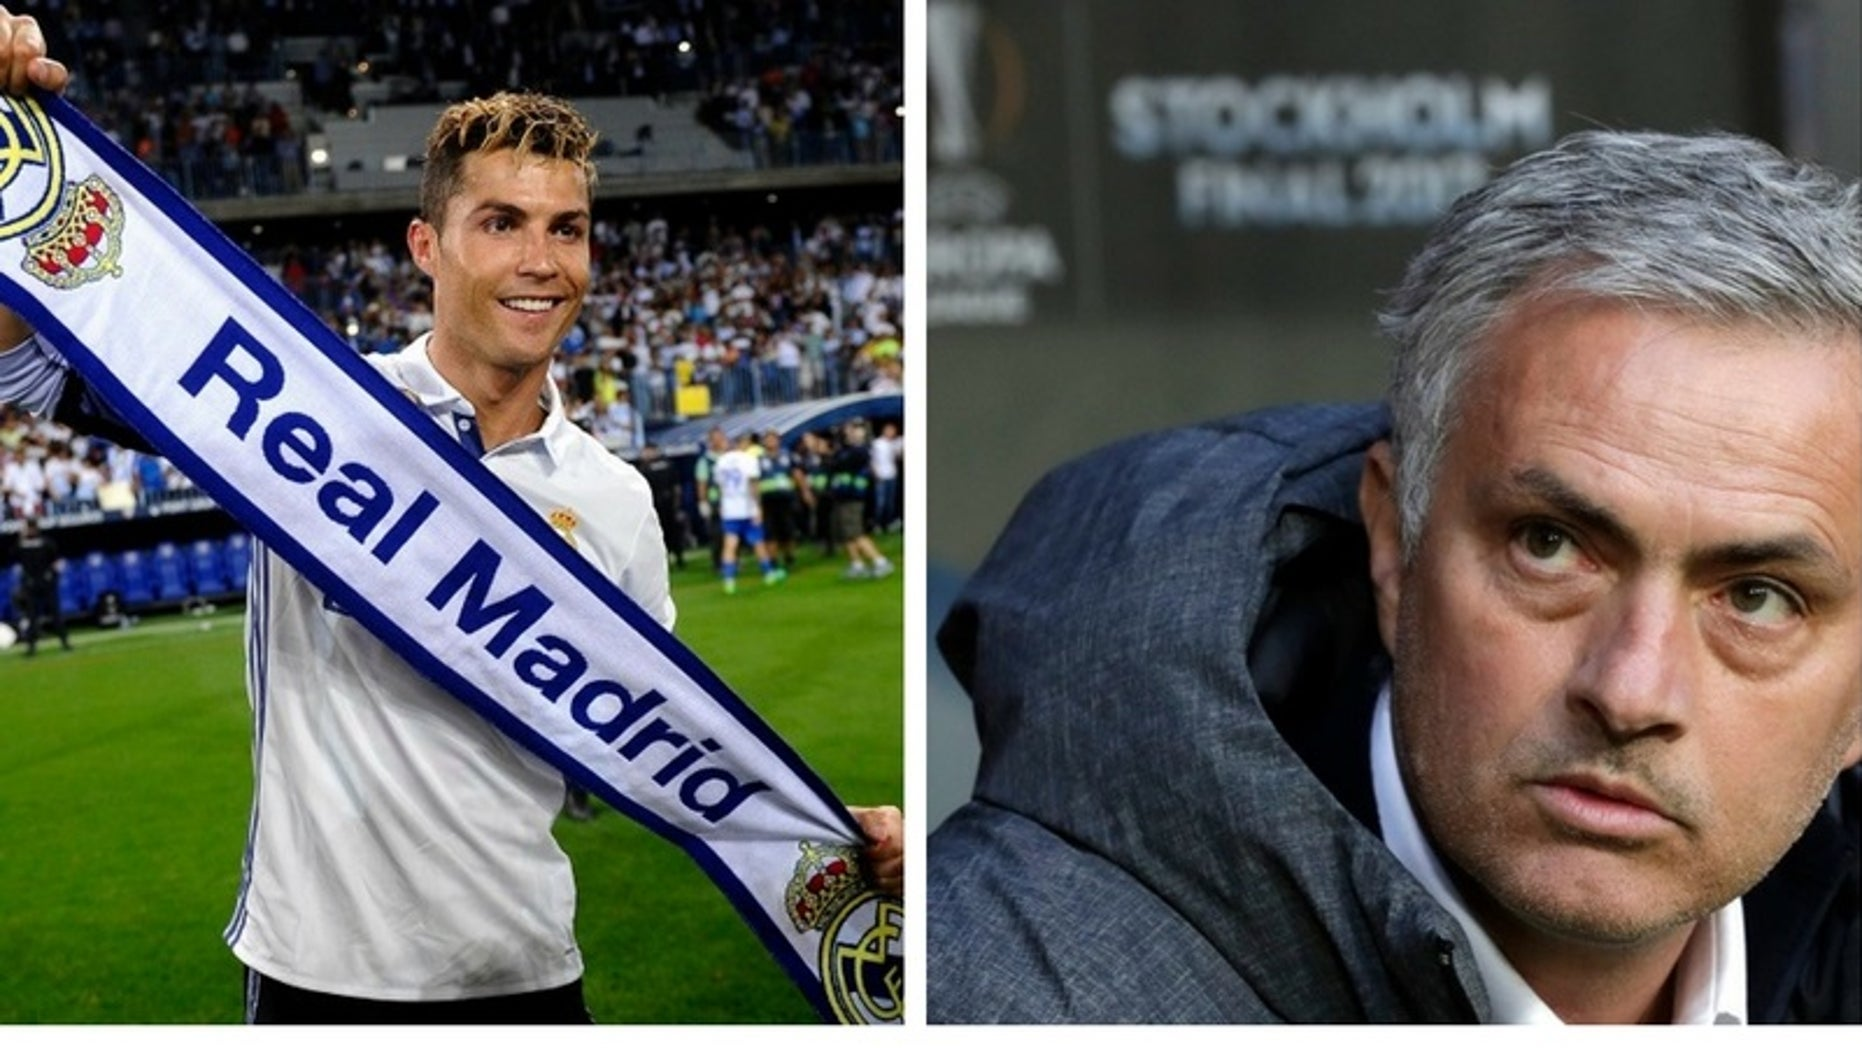 Portuguese soccer star Cristiano Ronaldo and soccer coach Jose Mourinho have been accused of tax fraud in Spain.